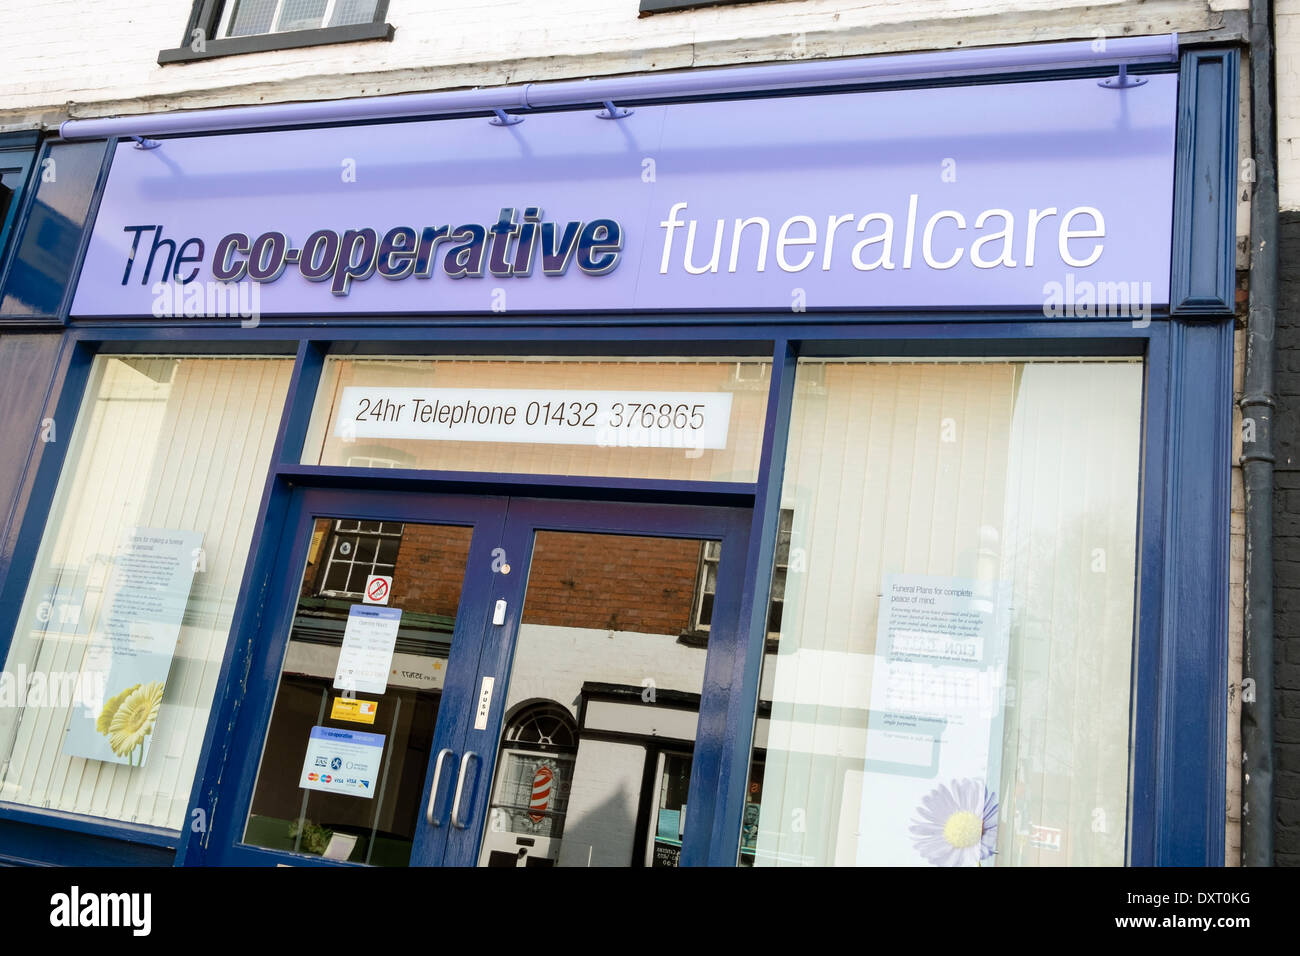 Co-operative funeral care shop in Hereford, UK. - Stock Image